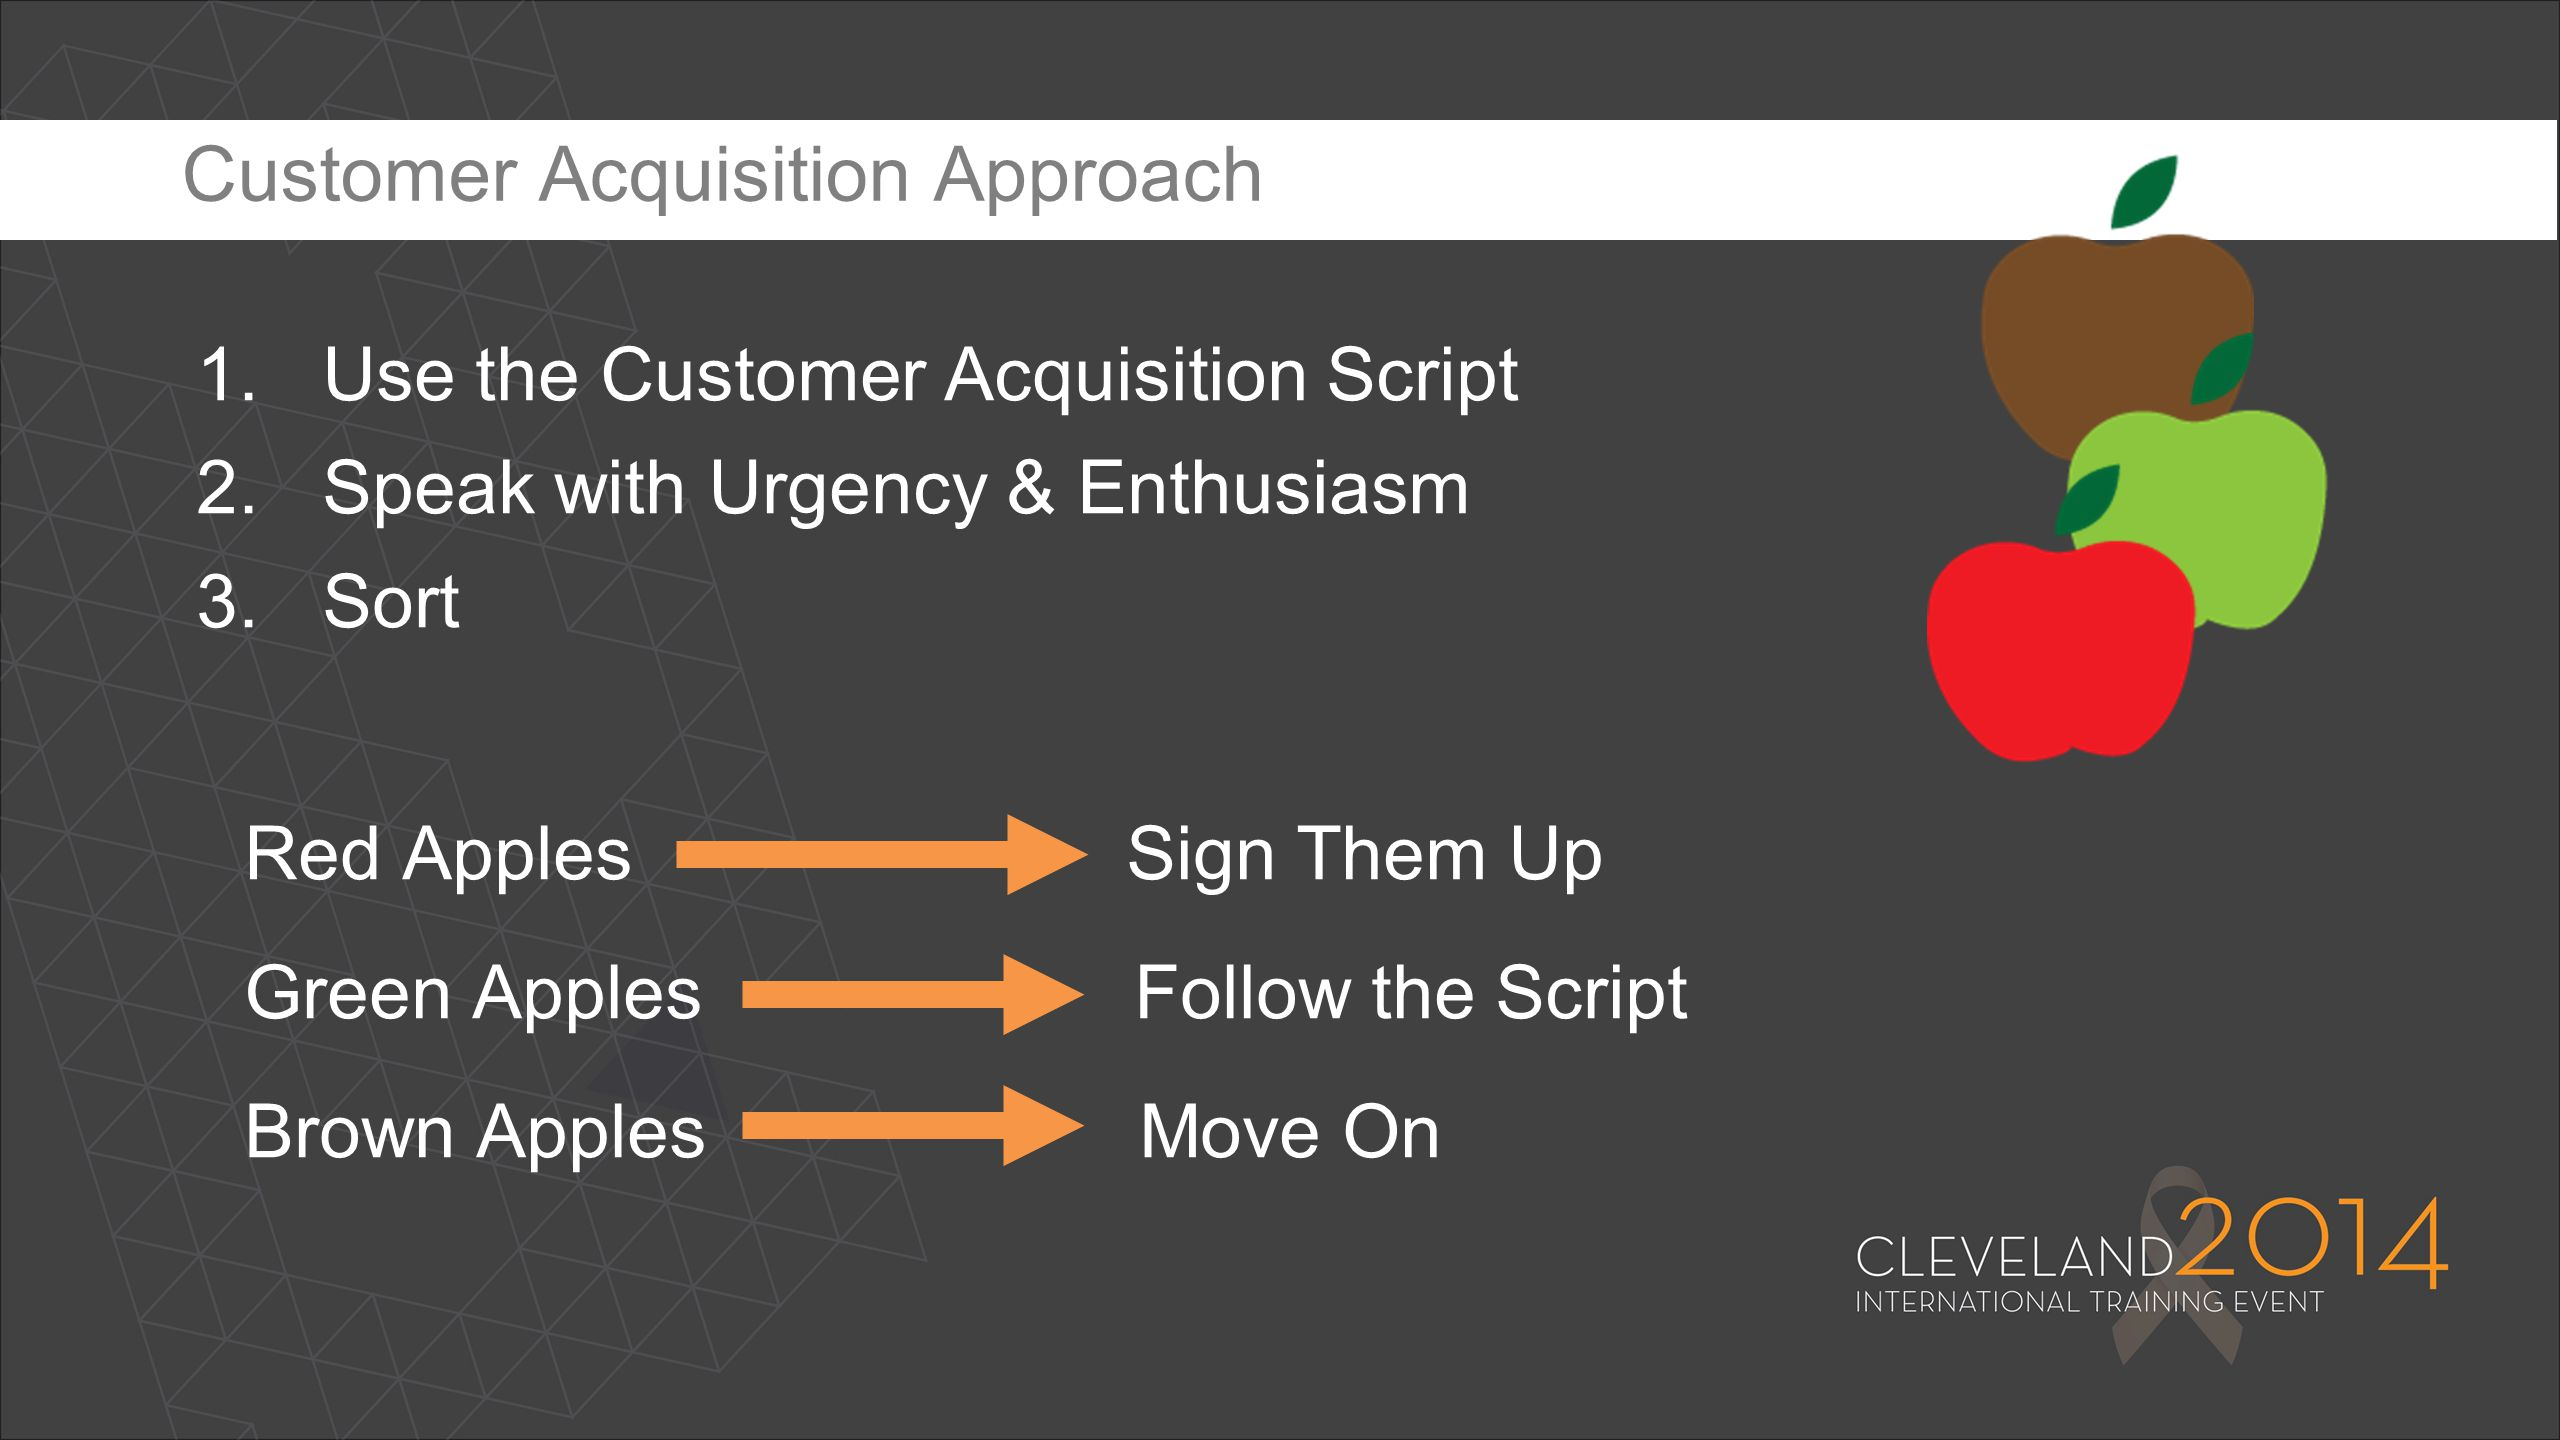 1.Use the Customer Acquisition Script 2.Speak with Urgency & Enthusiasm 3.Sort Red Apples Sign Them Up Green Apples Follow the Script Brown Apples Mov